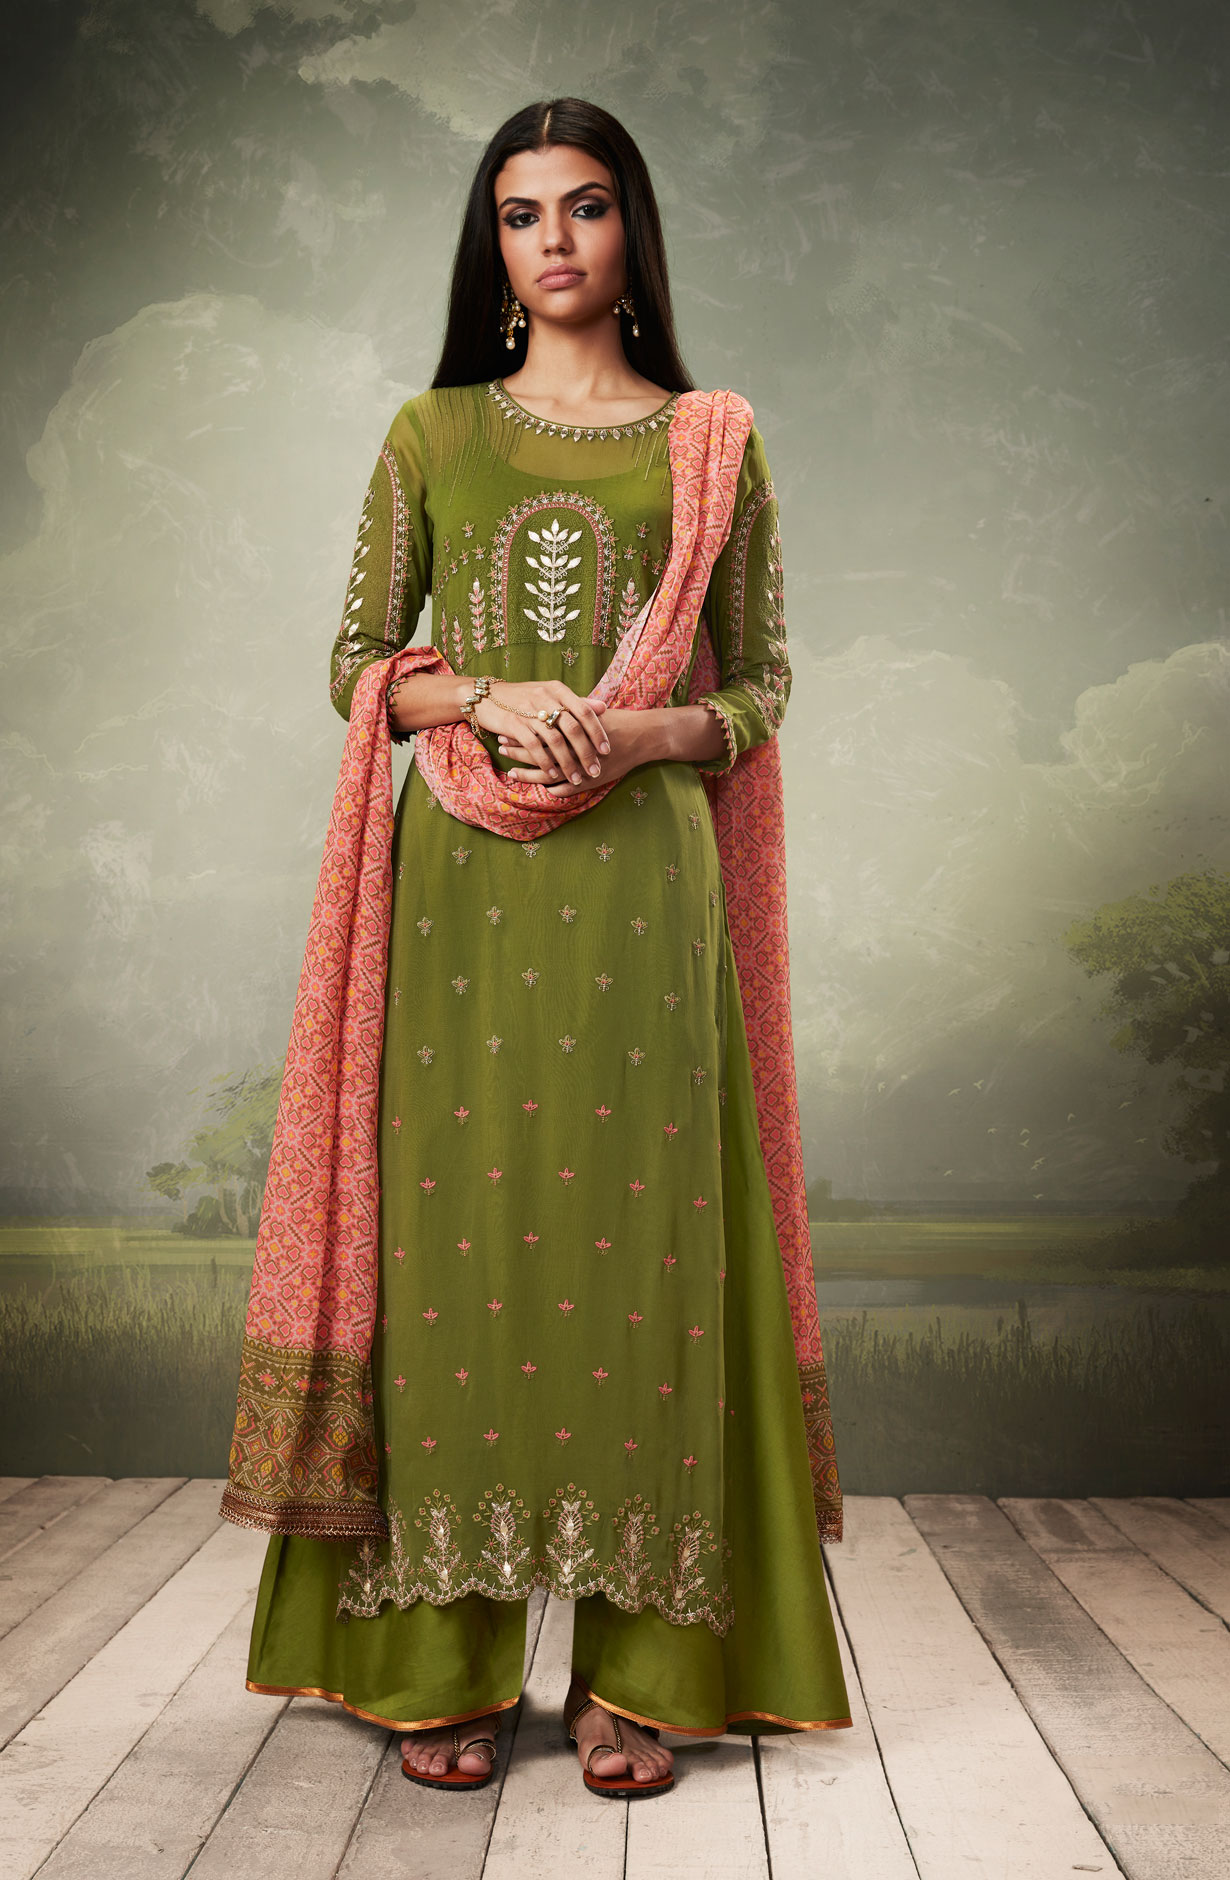 Georgette and Satin Zari Embroidery Salwar Suit Sets in